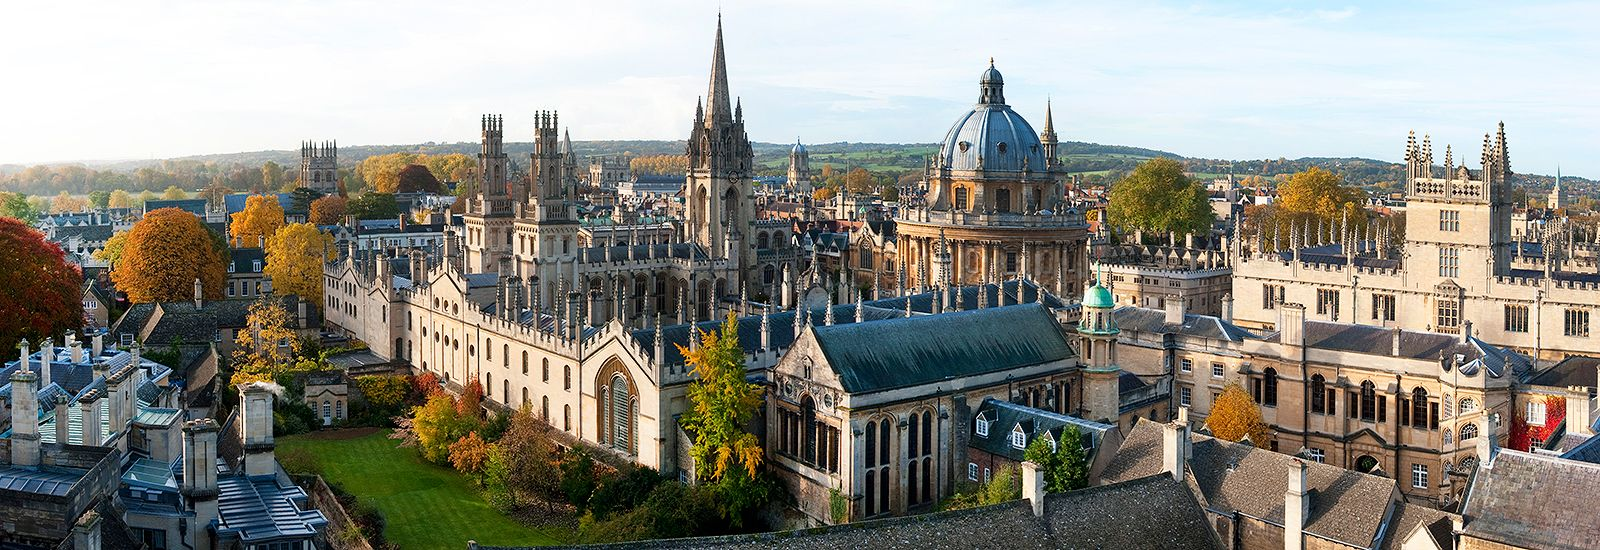 Oxford skyline including Radcliffe Square and the Bodleian